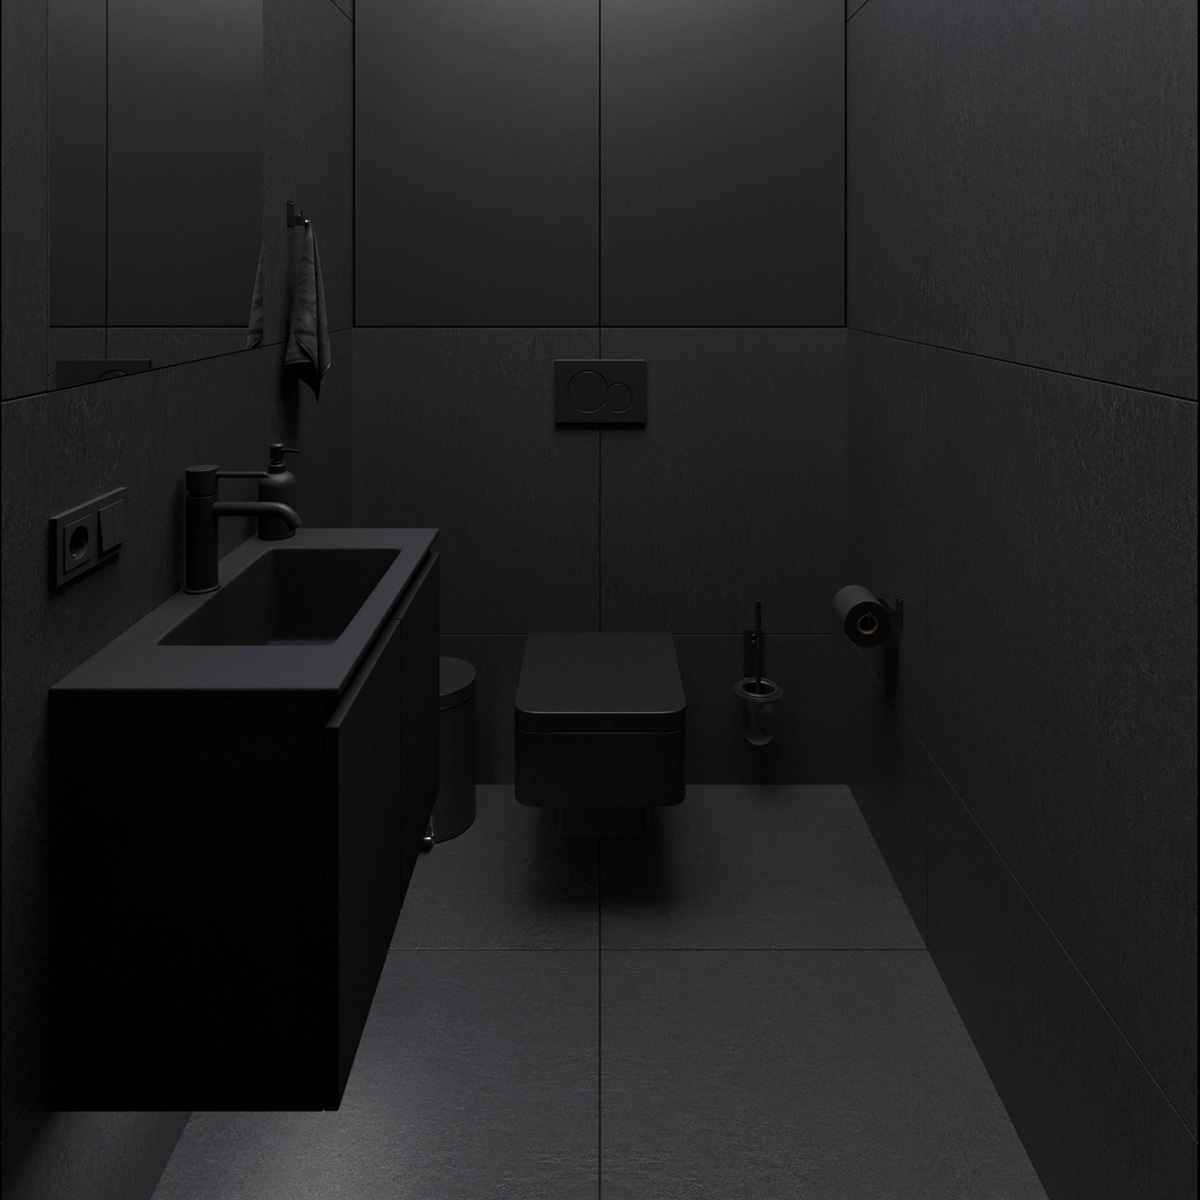 2020-black-bathroom-faucet